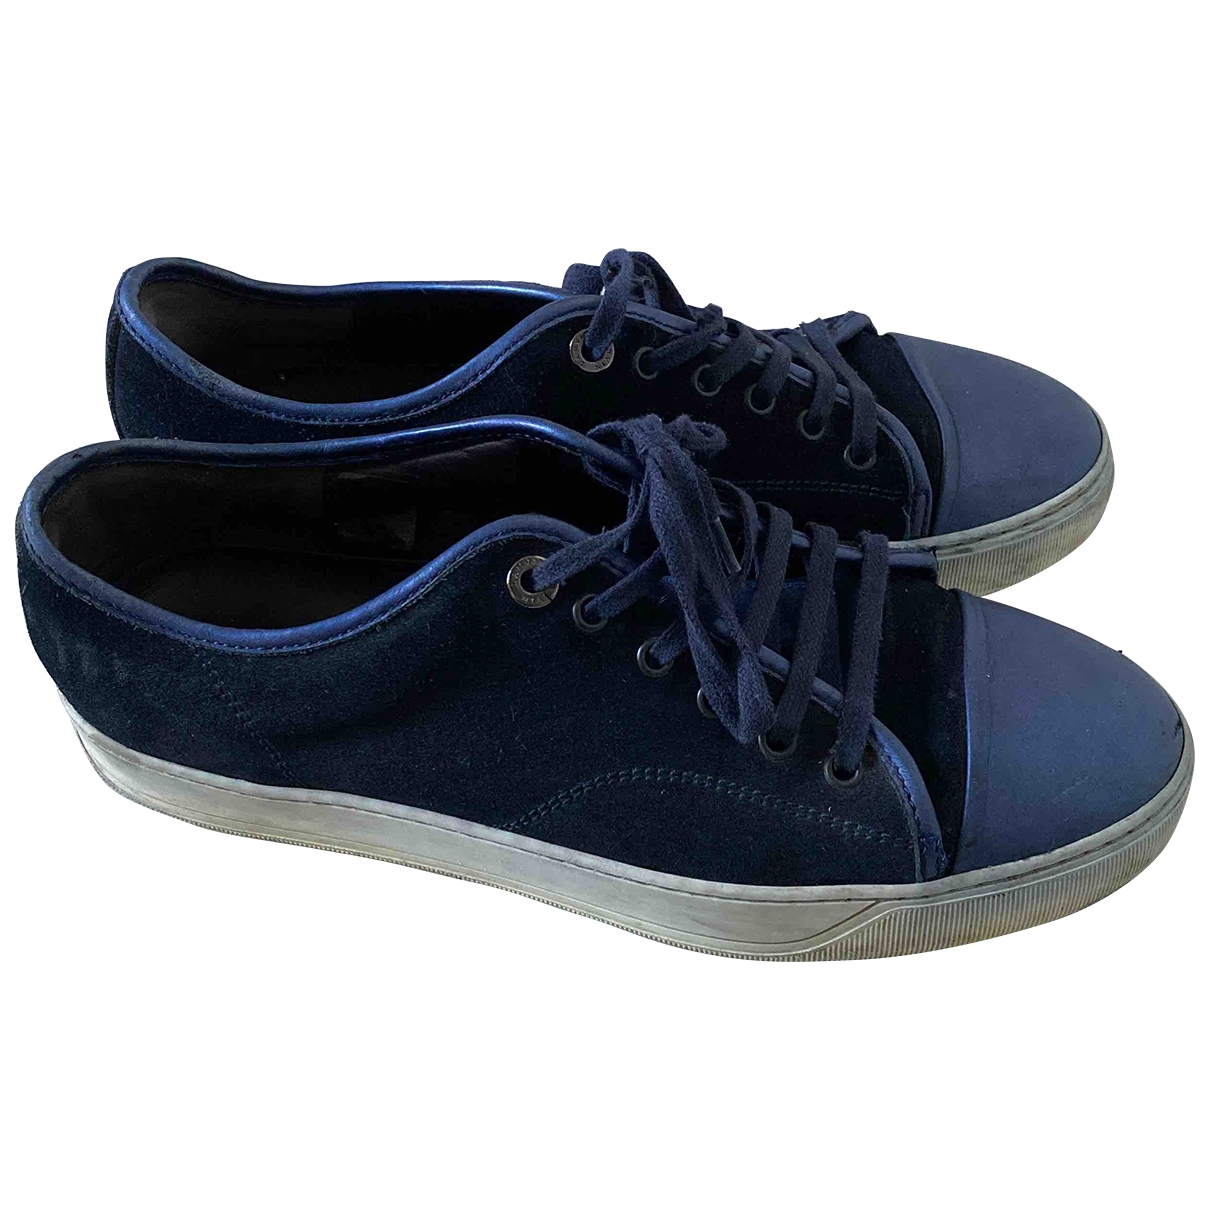 Lanvin \N Navy Suede Trainers for Men 7 UK